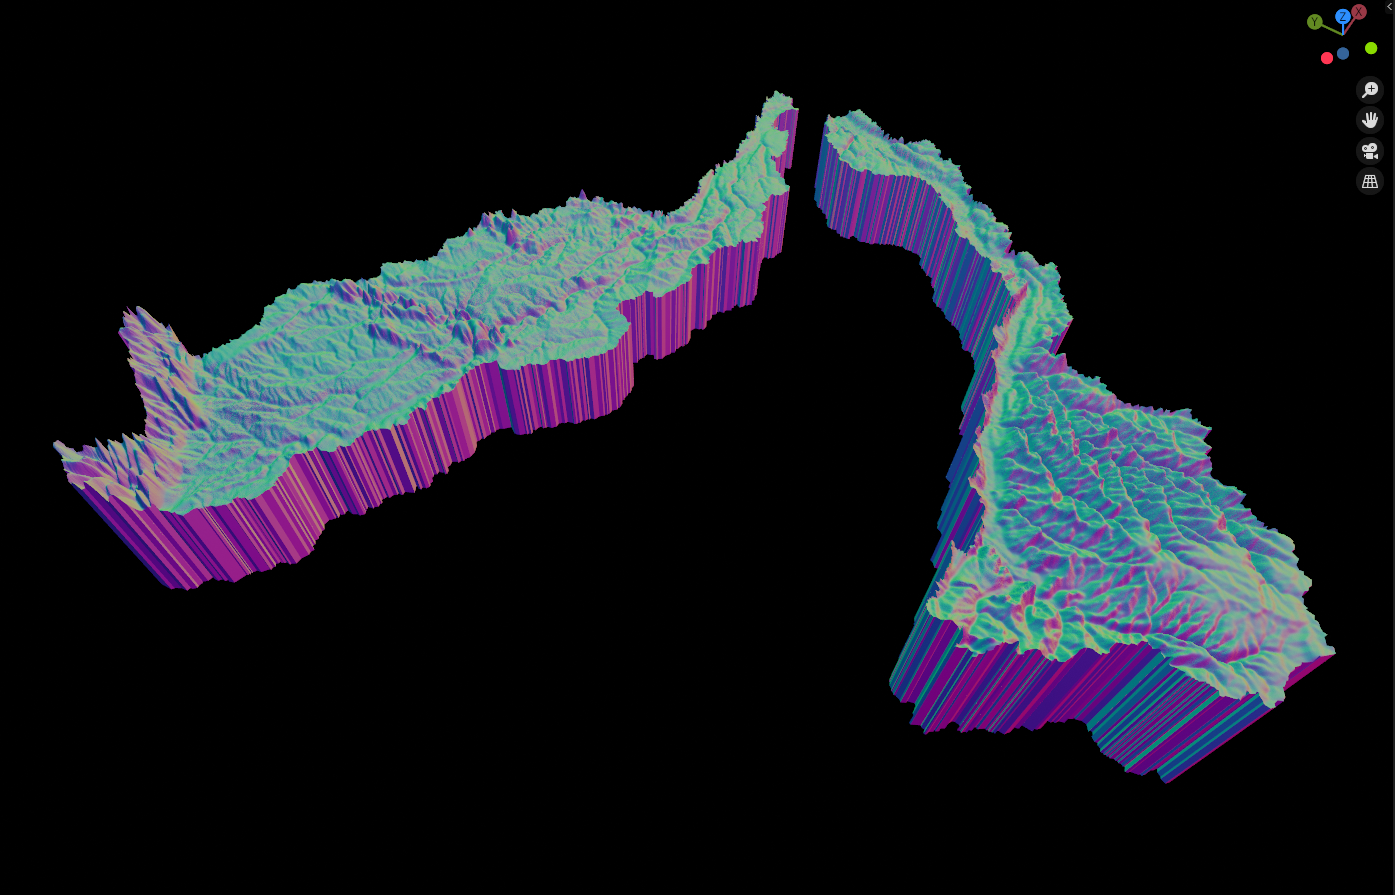 Caquetá-Japurá & Juruà sub bassins - Normal Map